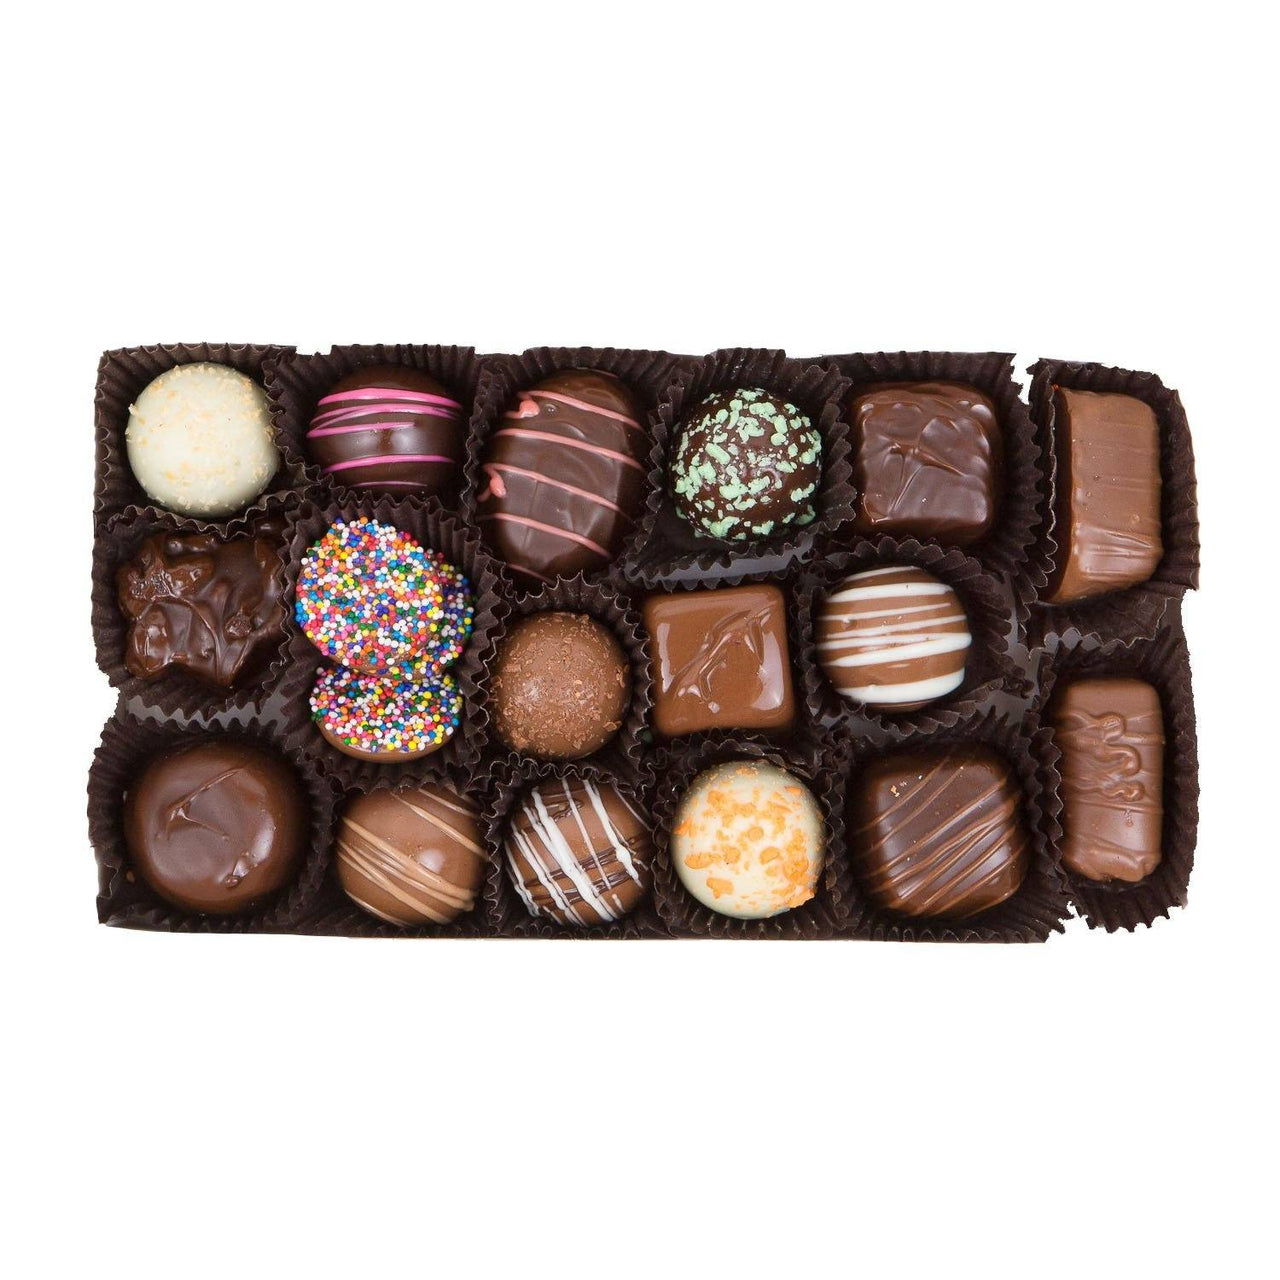 Unique Christmas Gifts for Mom  - Chocolate Assortment Gift Box - Jackie's Chocolate (4336371204211)